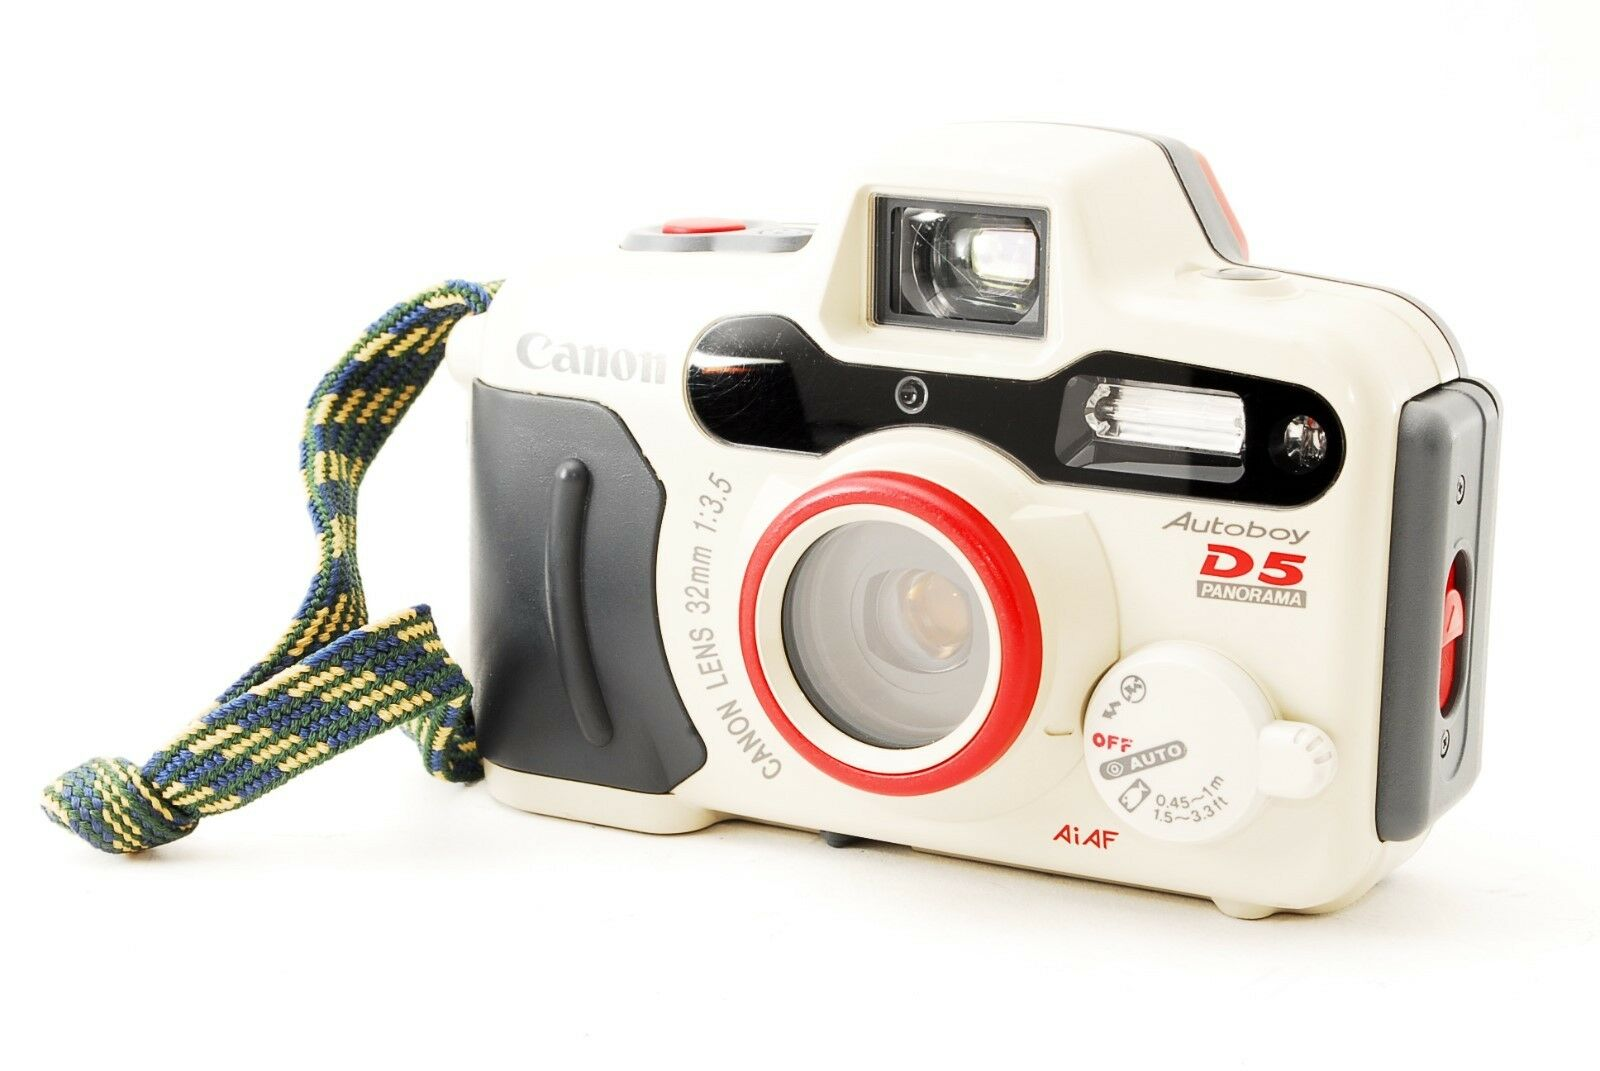 dating cameras Old cameras an extension of the original classic camera icon archive this page contains images which are free for use by web and print designers most of them date back to the late 90s i am in the process of removing older,poor quality images and replacing them with newer, high-resolution files.